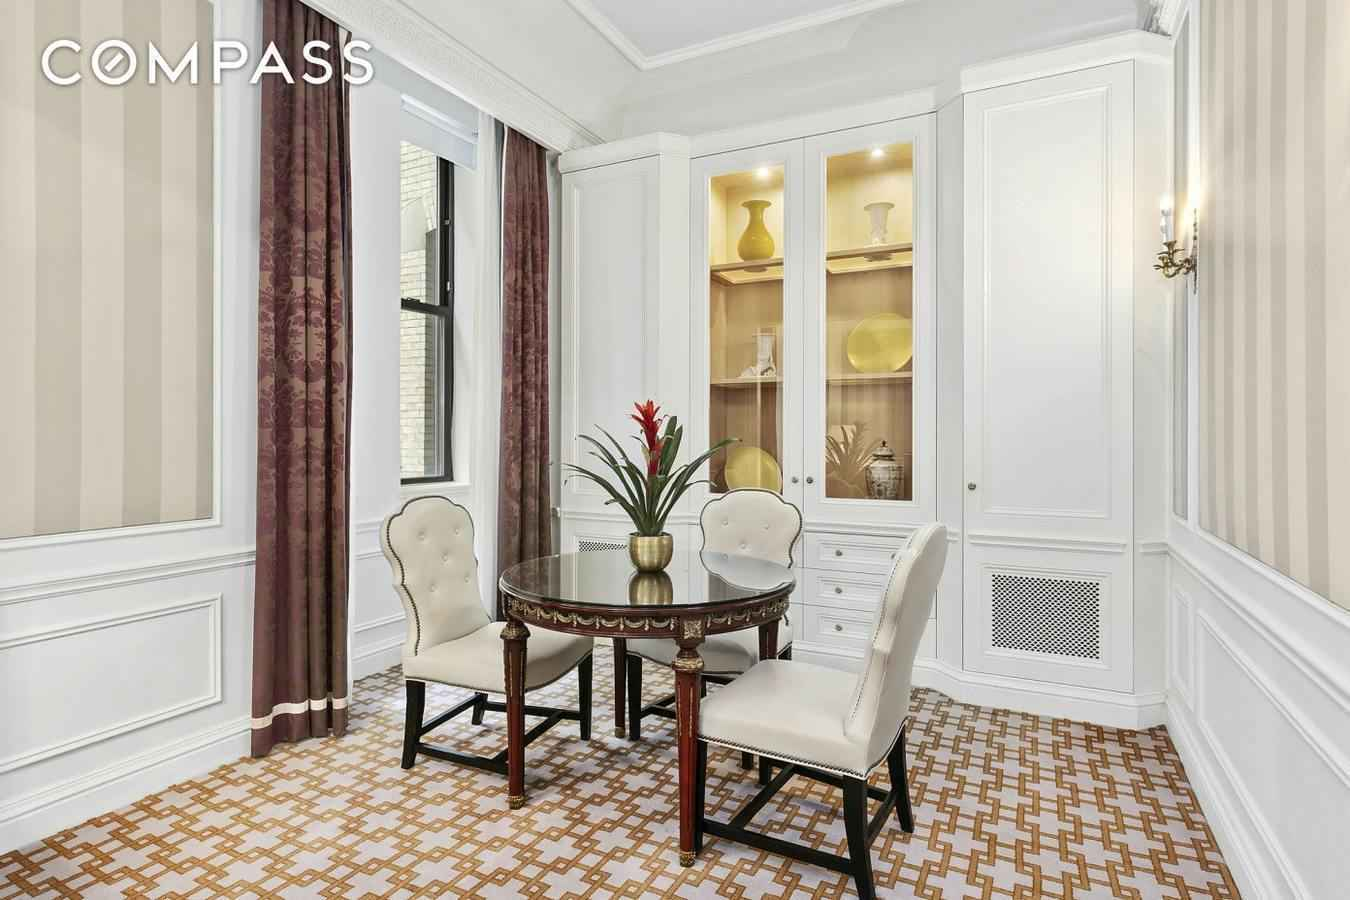 Apartment for sale at 2 East 55th Street, Apt 822/31